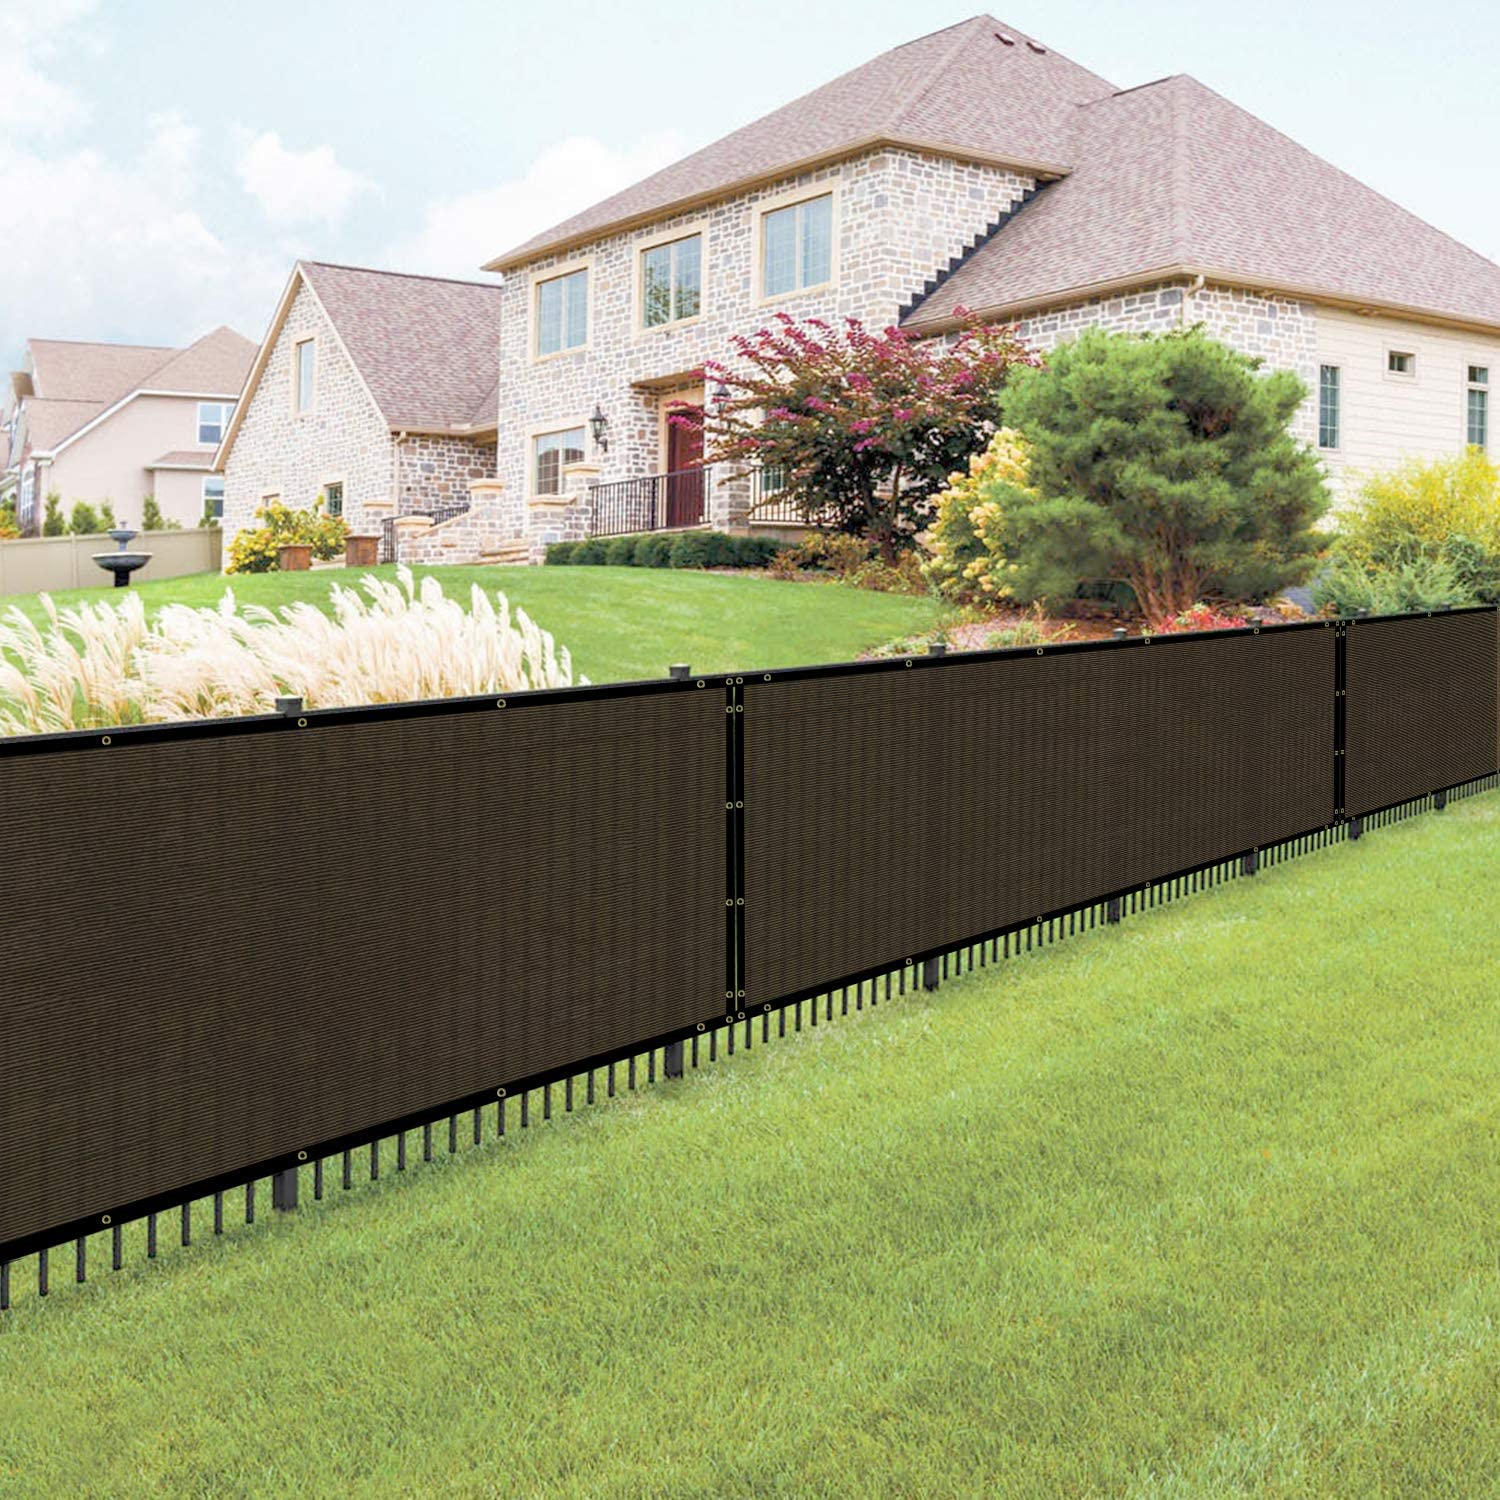 Beige 8 x 1 Commercial Outdoor Backyard Porch Deck Shade Windscreen Mesh Fabric 90/% Beockage 8 Years Warranty E/&K Sunrise Fence Privacy Screen with Zipties Customized